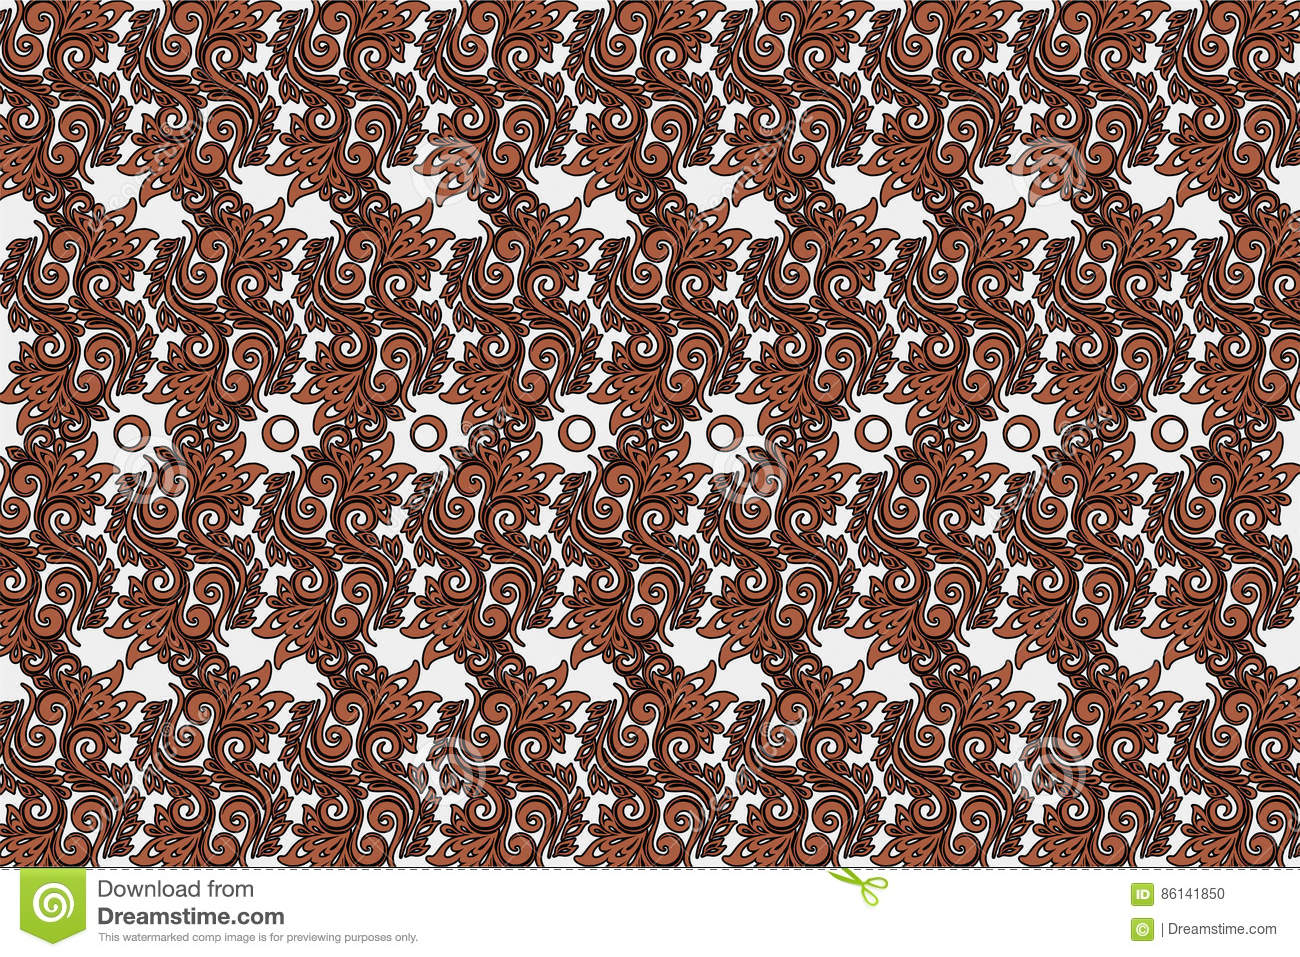 Download Background Pattern Design Ornament Parang Barong Javanese Batik Indonesian Stock Vector - Illustration of brown, nature: 86141850